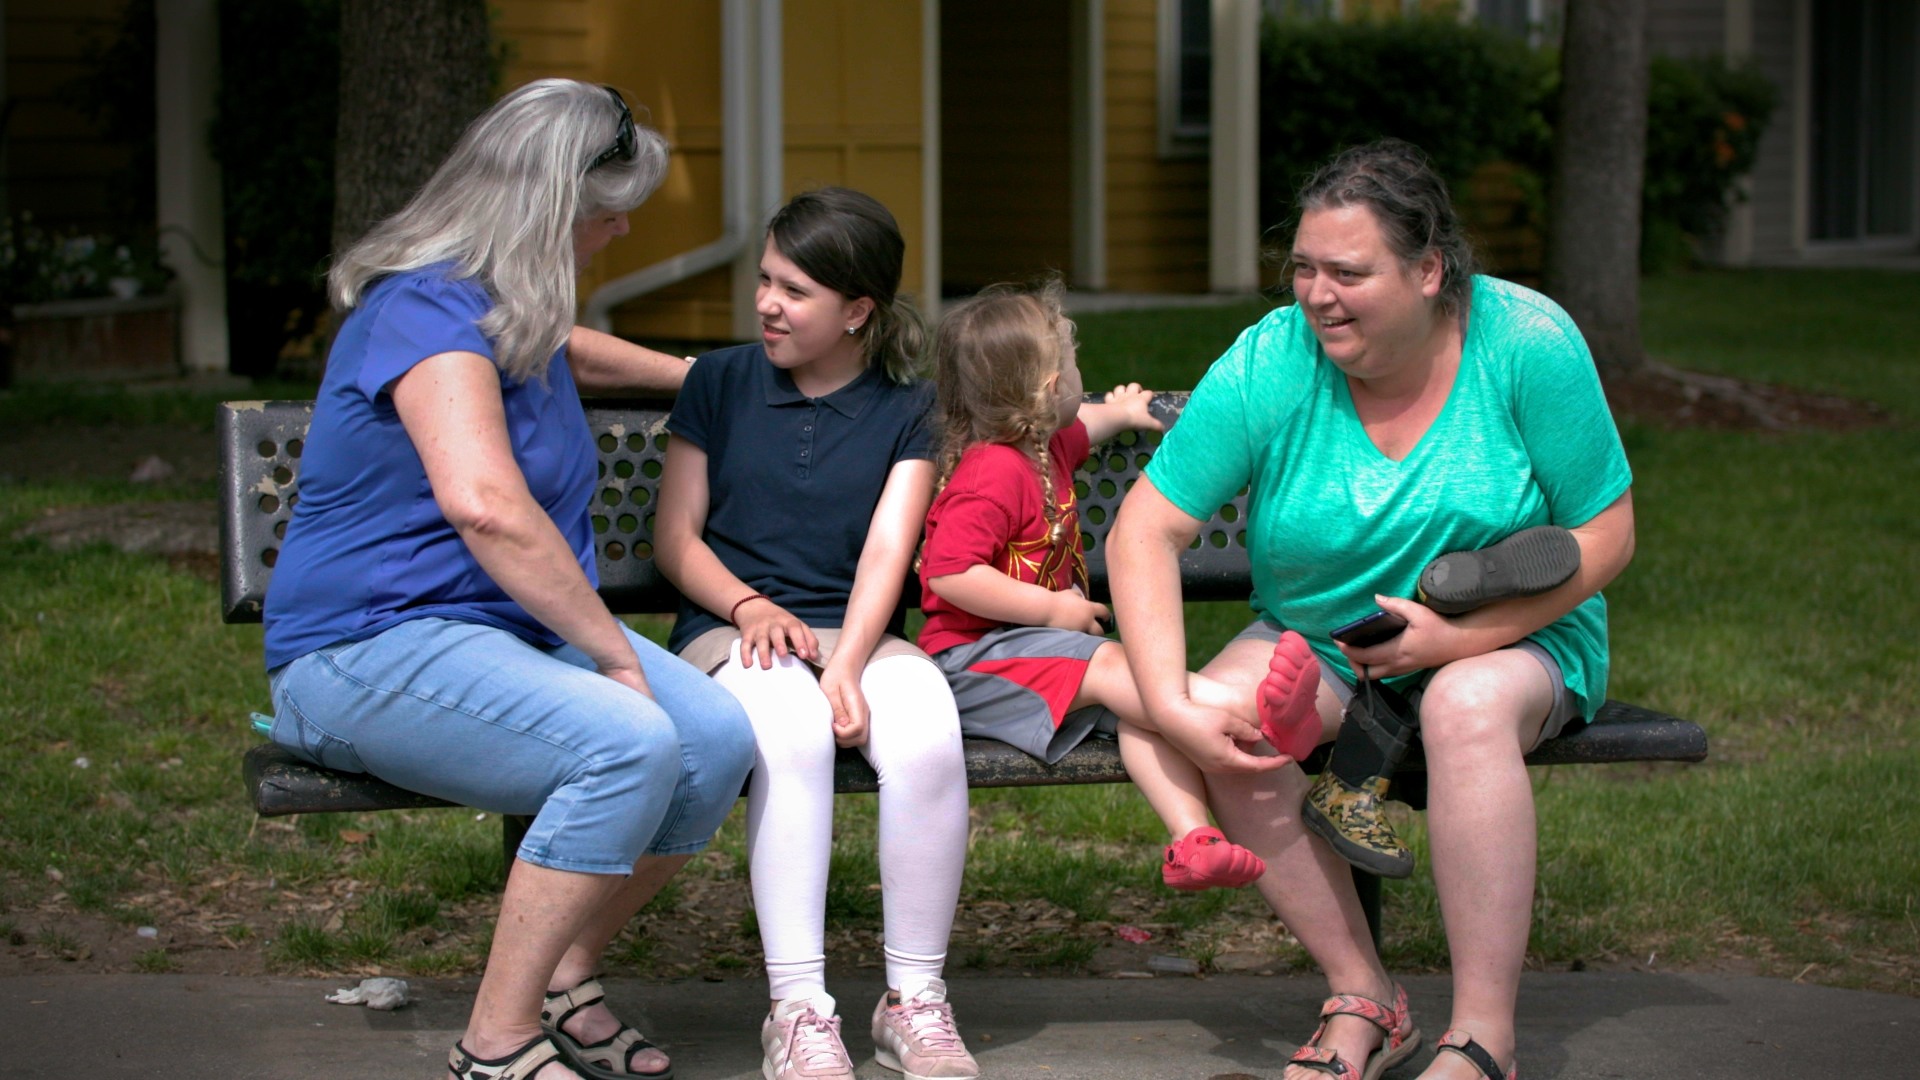 A grey haired woman, Julie Brenaman, sits on a bench talking with two children and their grandmother, who's trying to put a shoe on the smaller child.